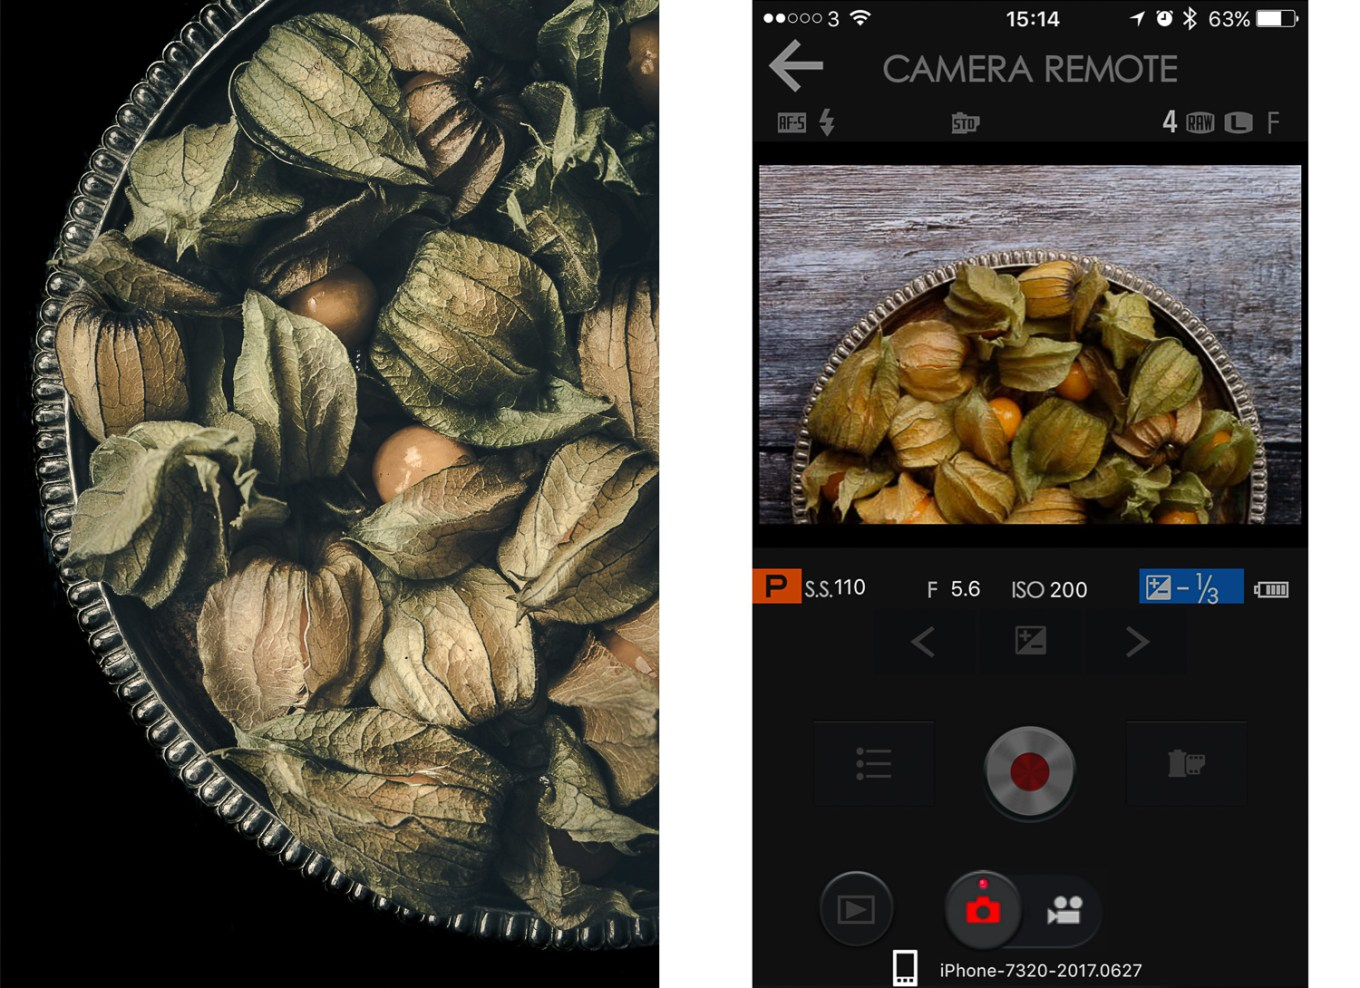 Physalis fuji app - How to Create Fine Art Images from the Mundane